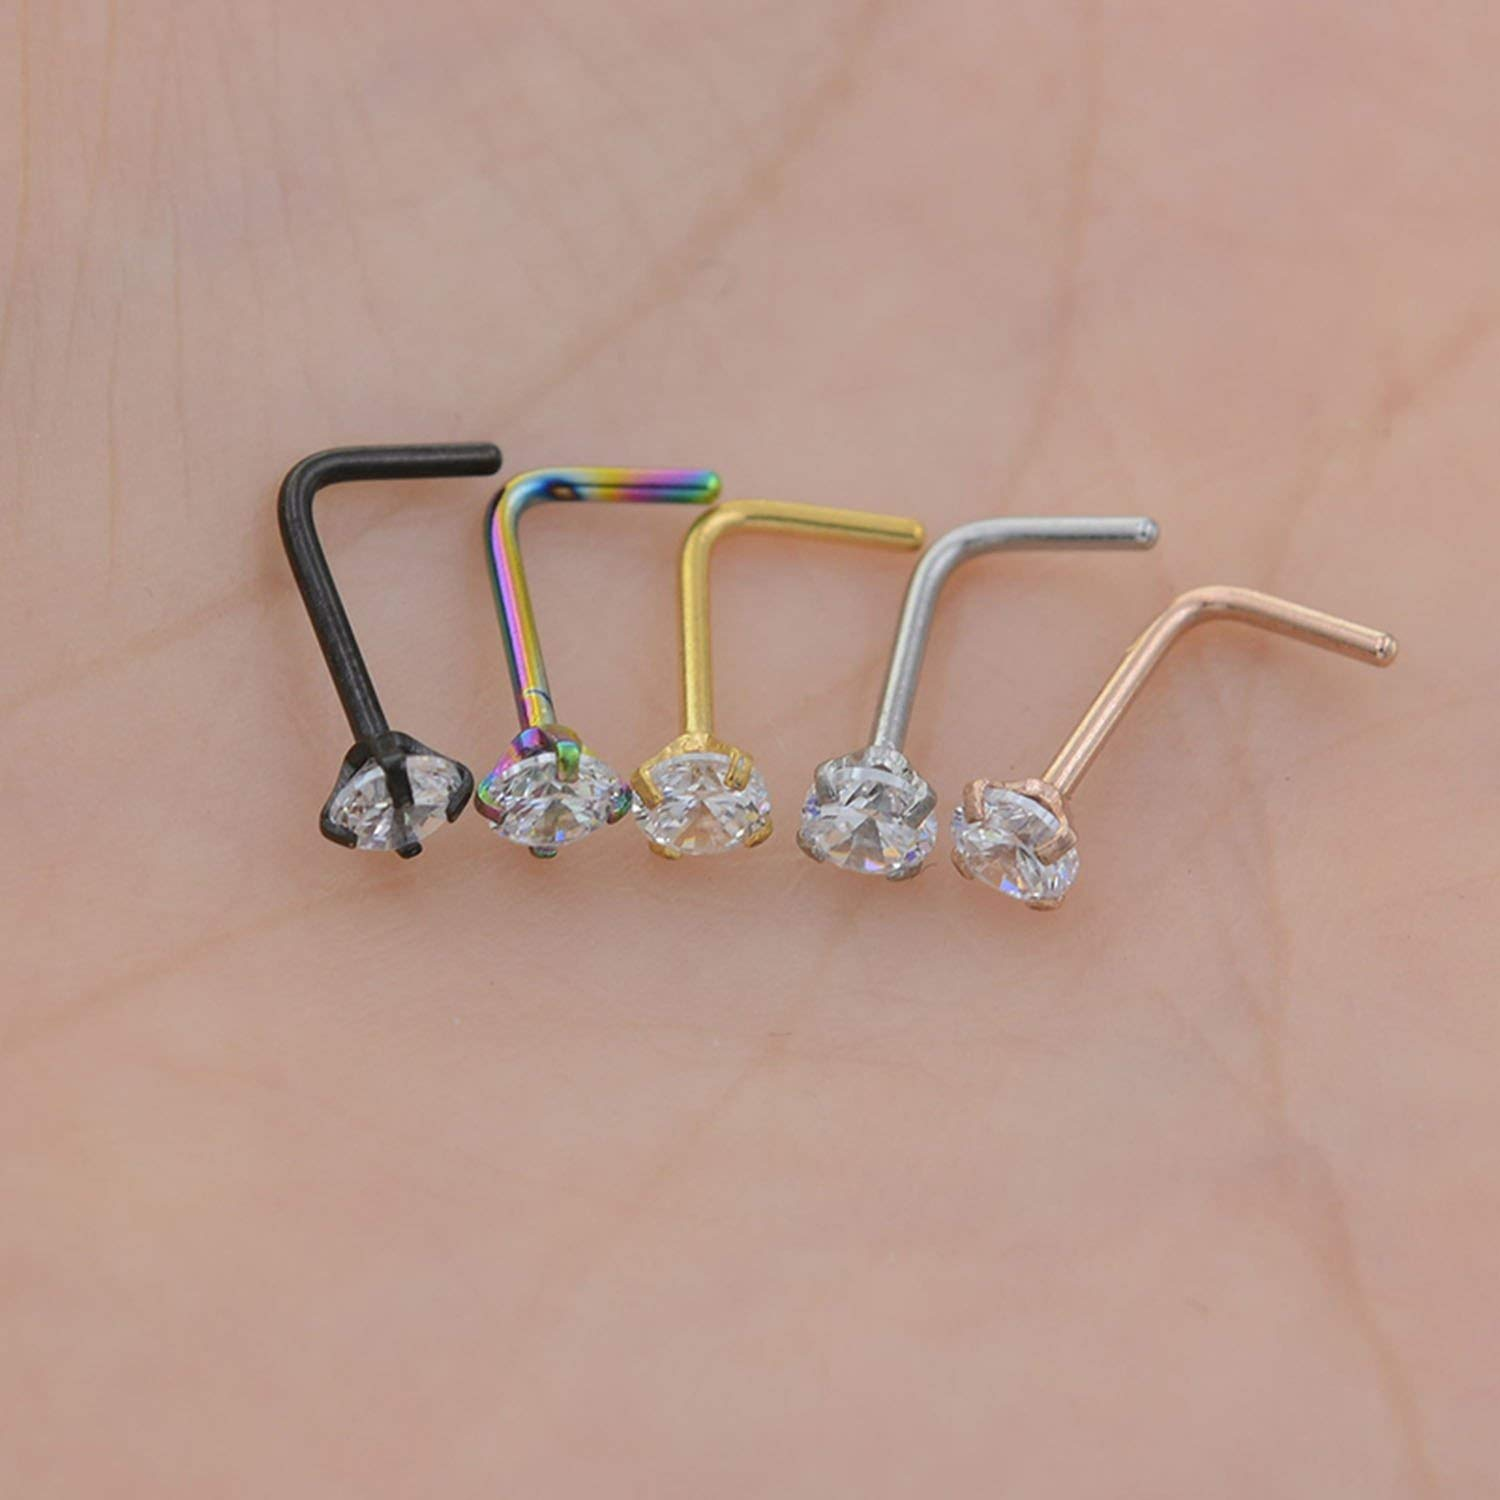 A-Hha 1Pc 20G Zircon Nose Stud Steptum Nose Studs Hooks Bar Pin Nose Rings Body Piercing Stainless Steel Jewellery,Silver Twist Shape,2Mm Gem Stone